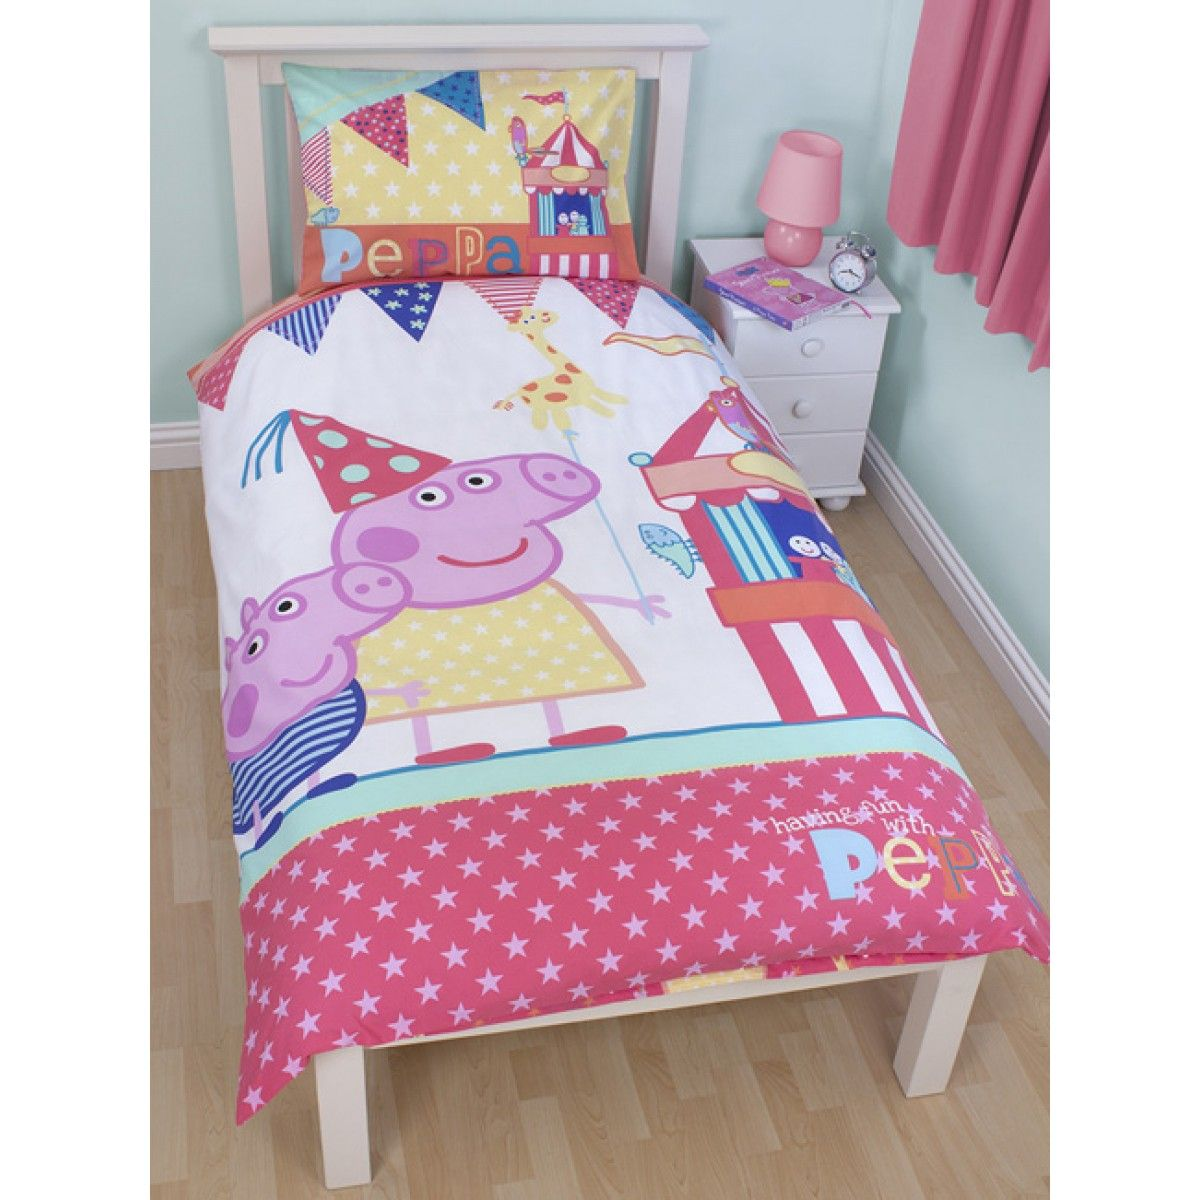 Explore Bedroom Makeovers Peppa Pig And More